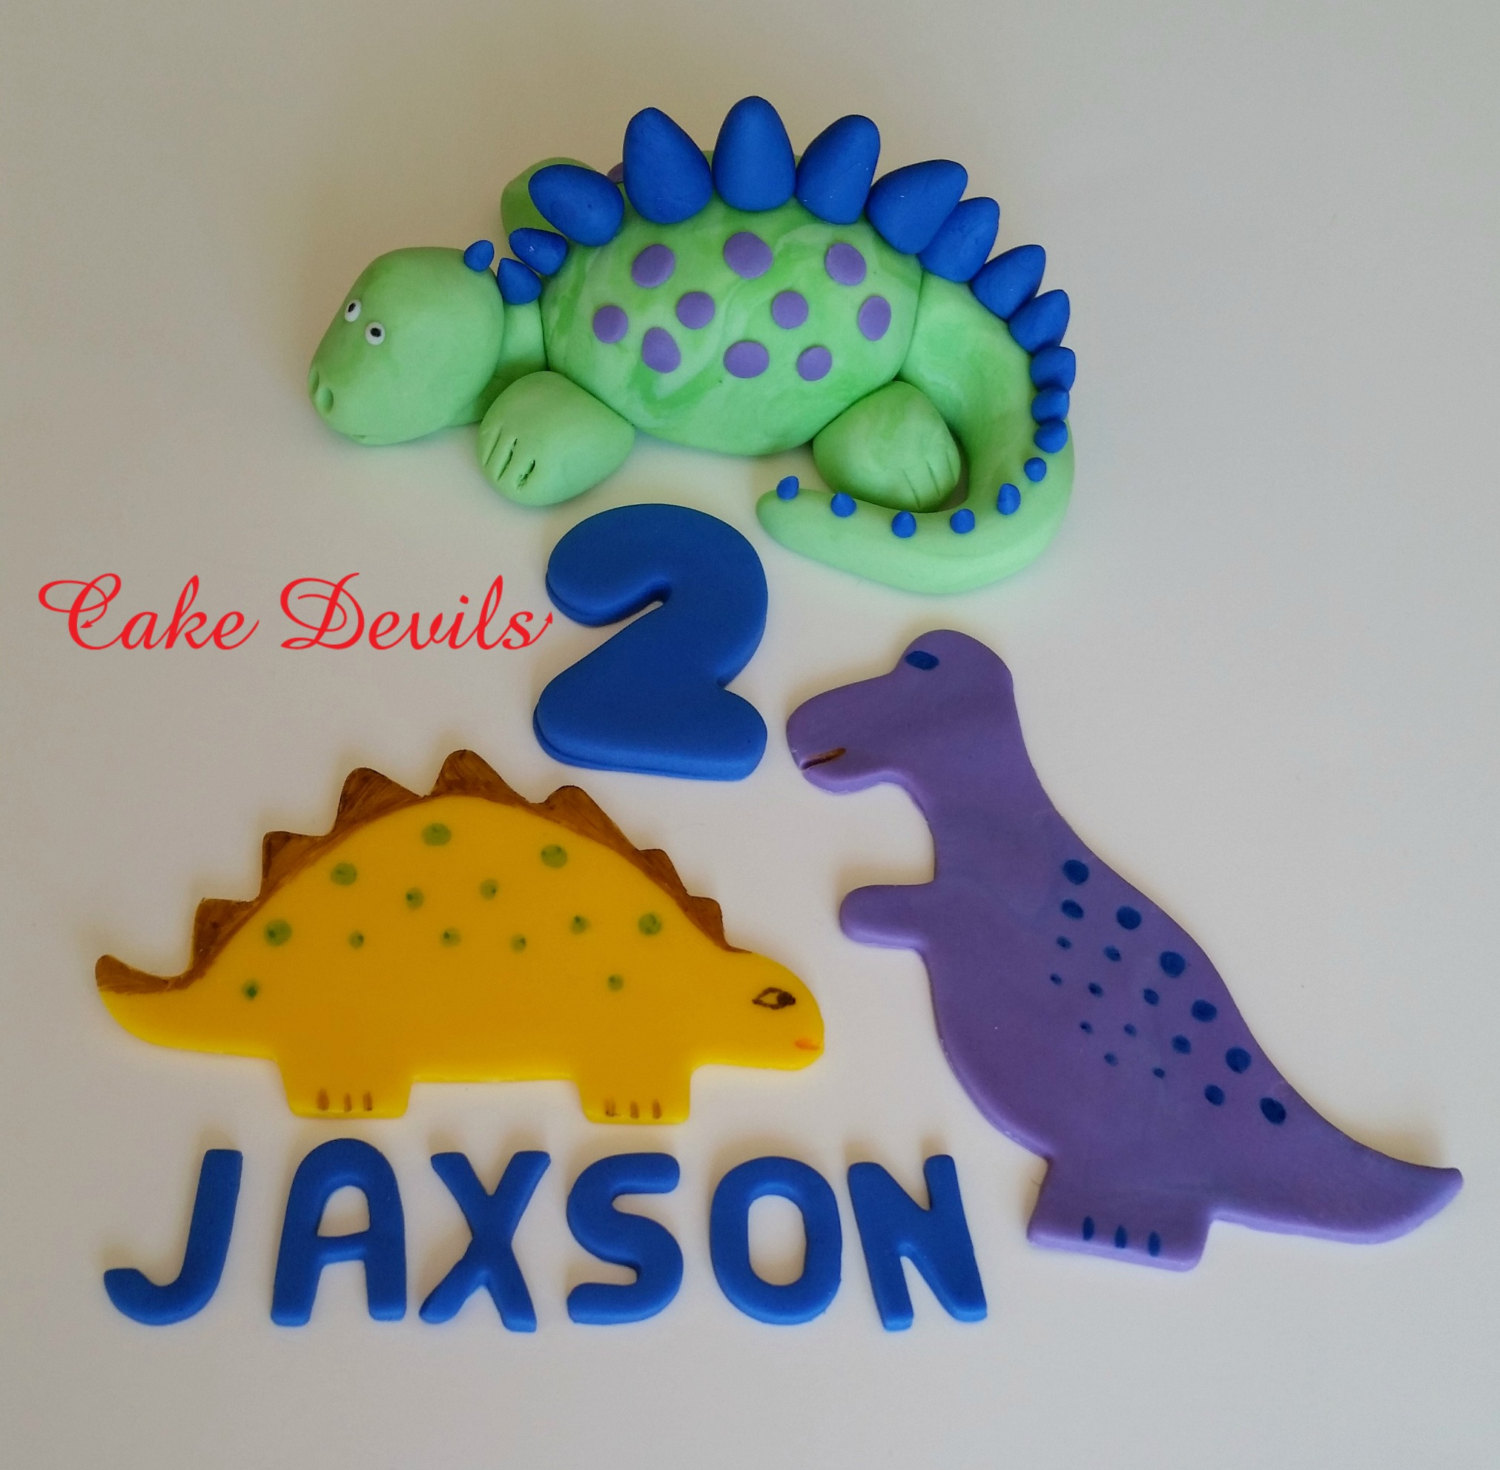 Dinosaur Cake kit Birthday Cake Decorations handmade edible